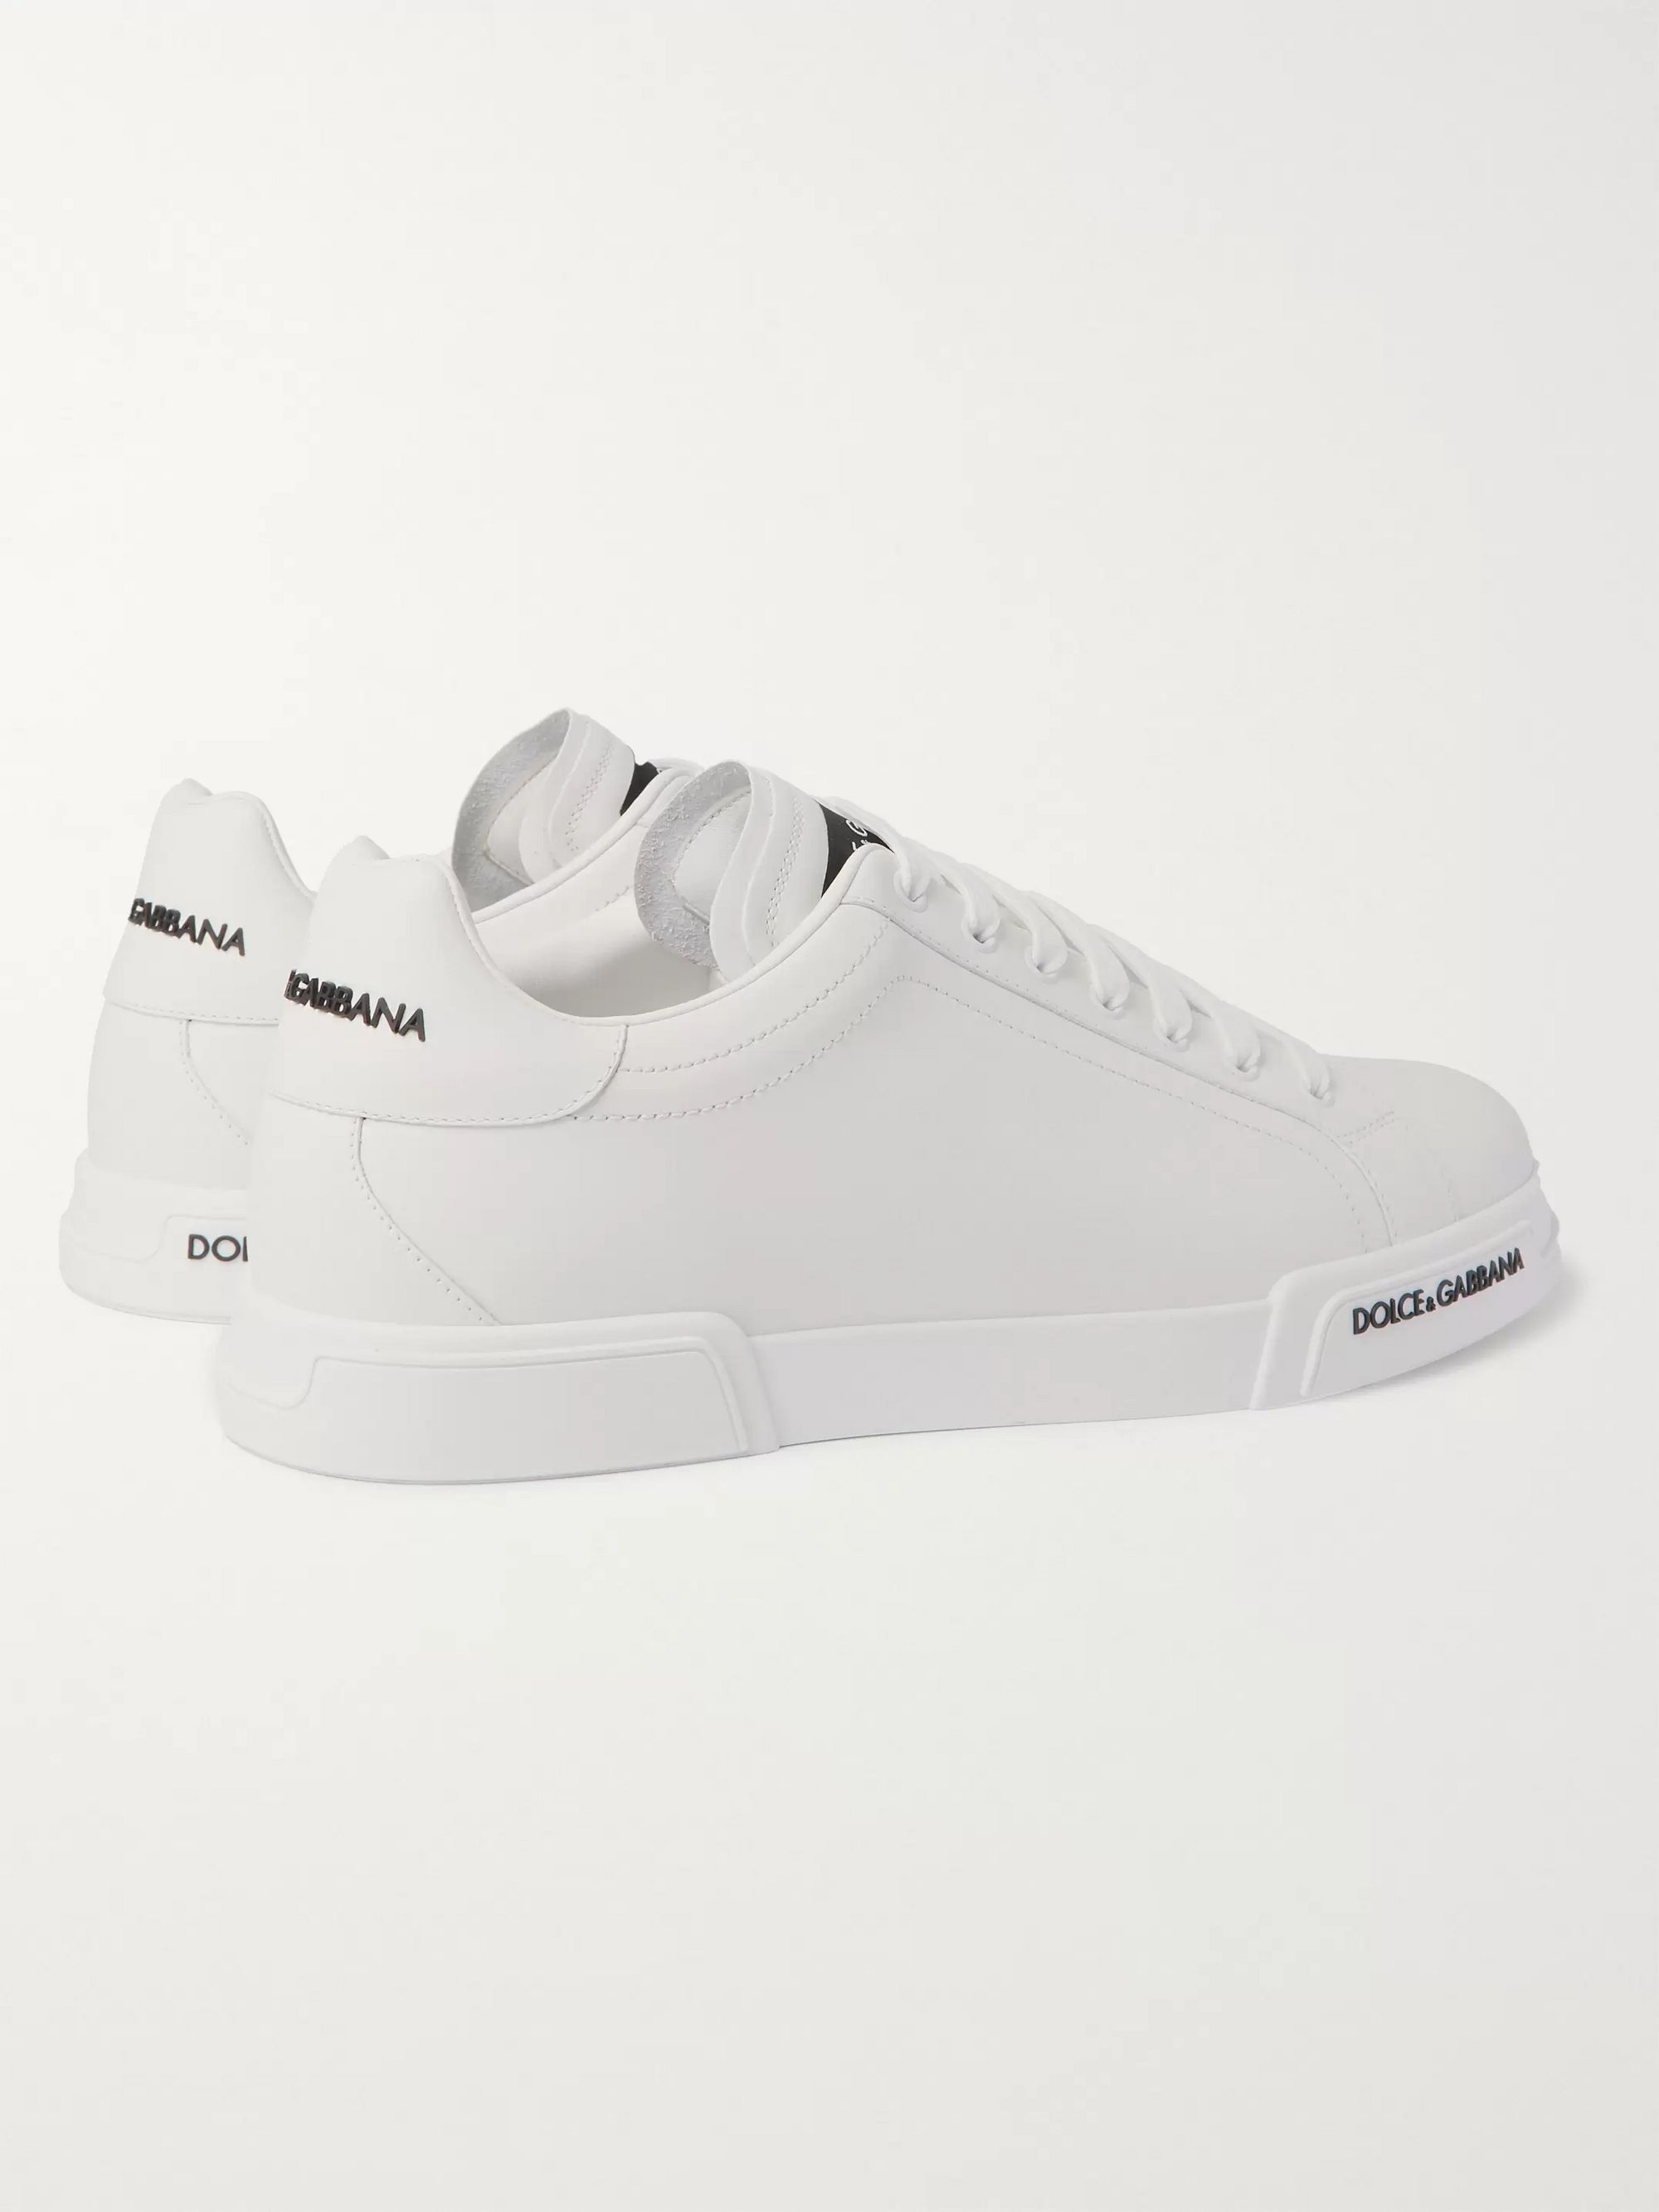 Dolce & Gabbana Logo-Appliquéd Rubber-Trimmed Leather Sneakers